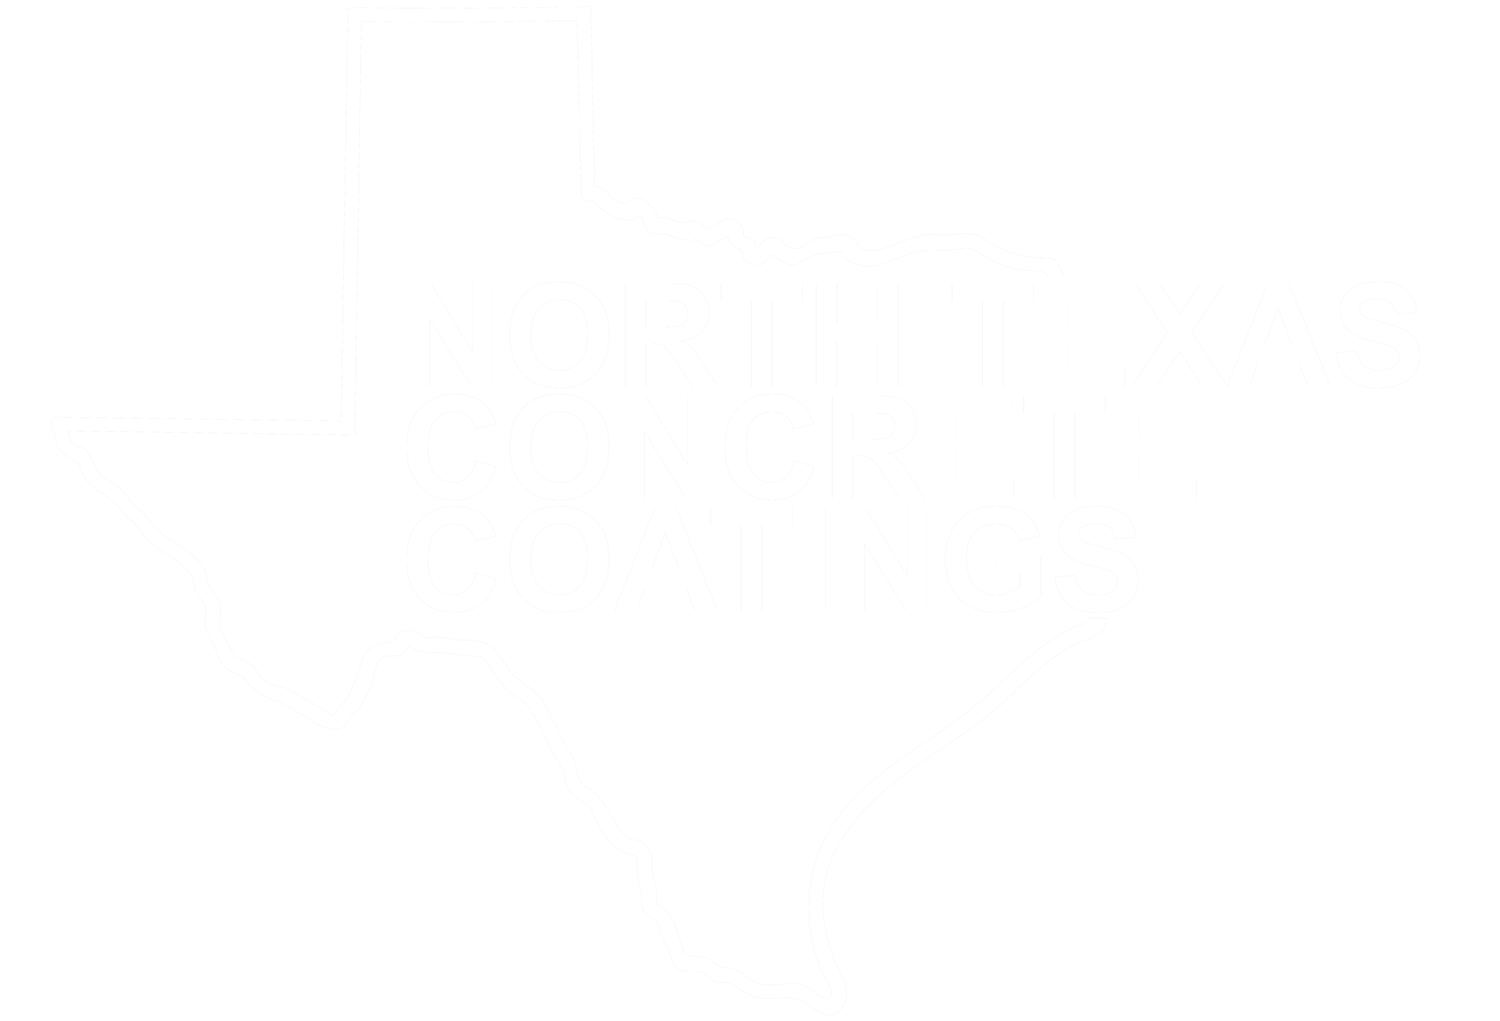 North Texas Concrete Coatings